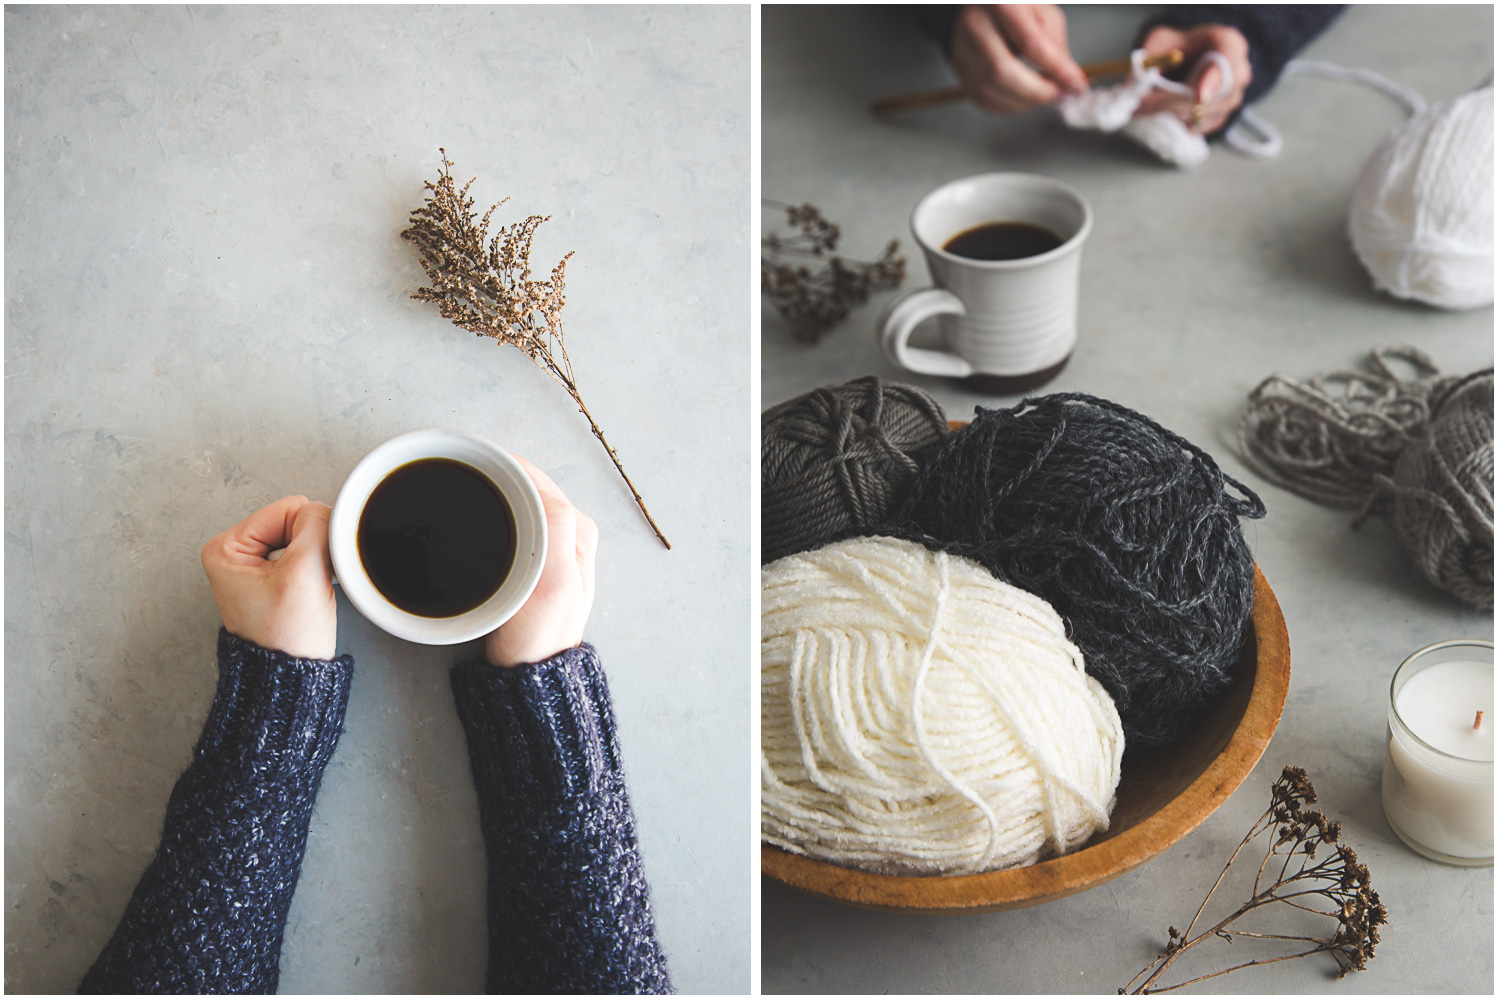 04_Bragg_Kate_January_Hands_Yarn_Coffee.jpg